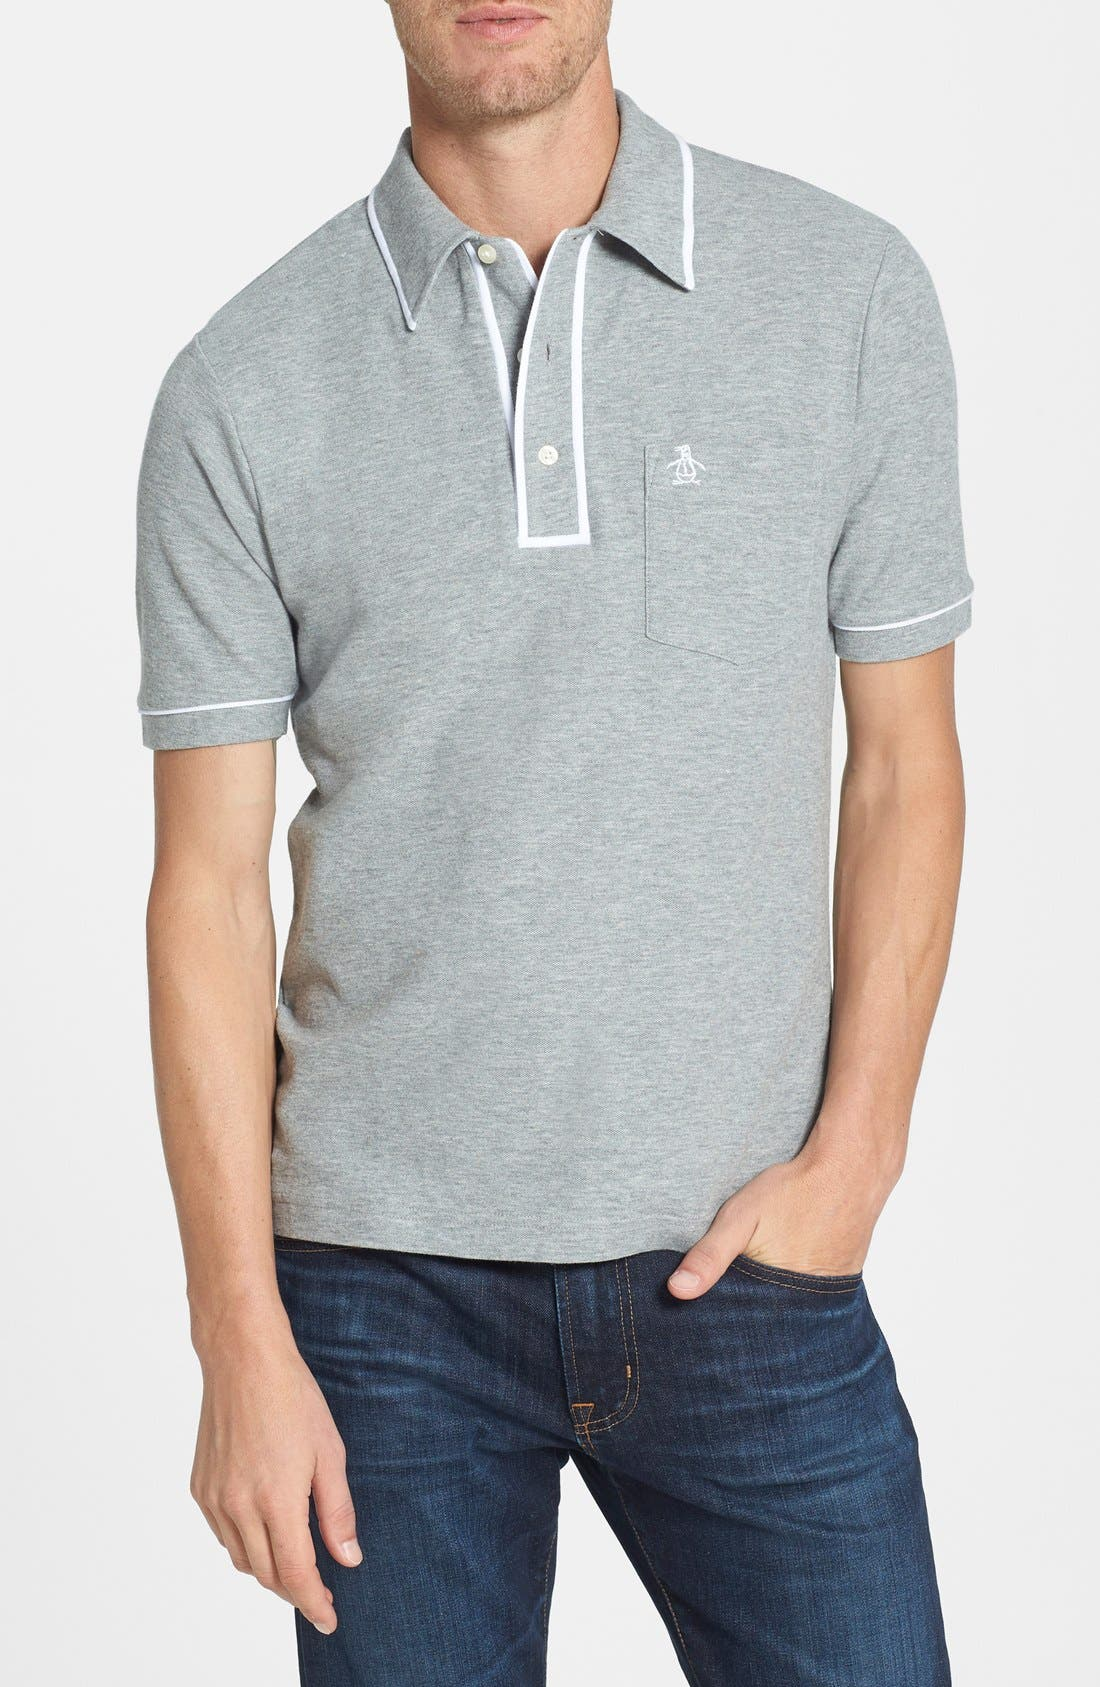 Alternate Image 1 Selected - Original Penguin 'The Earl' Trim Fit Piqué Polo